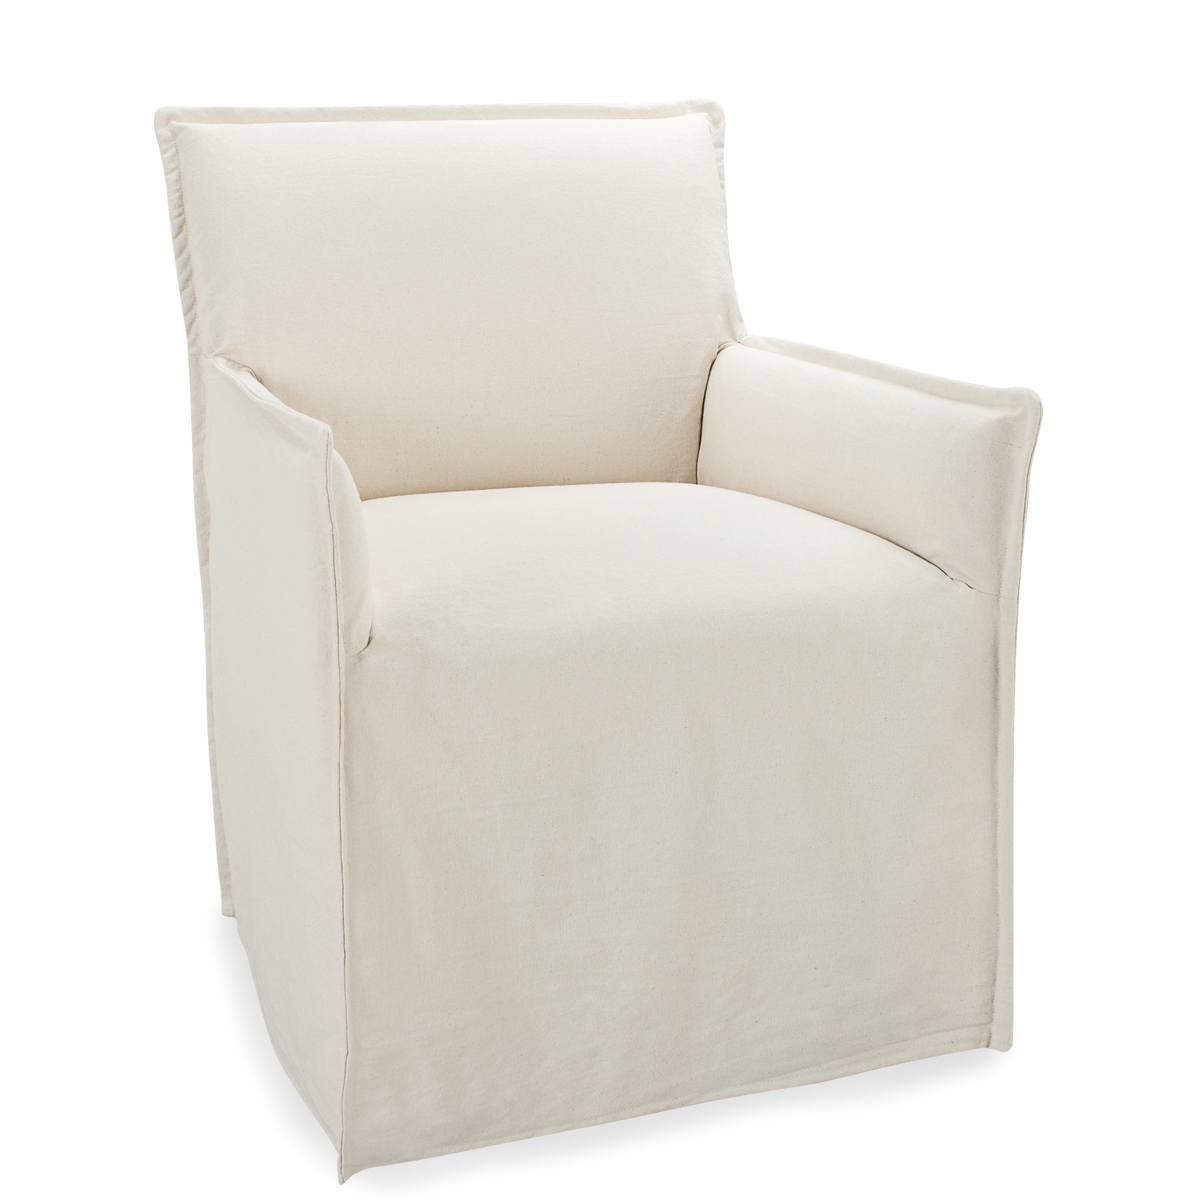 Dining_Armchair_with_Casters_C1747-41_Lee_Industries.jpg